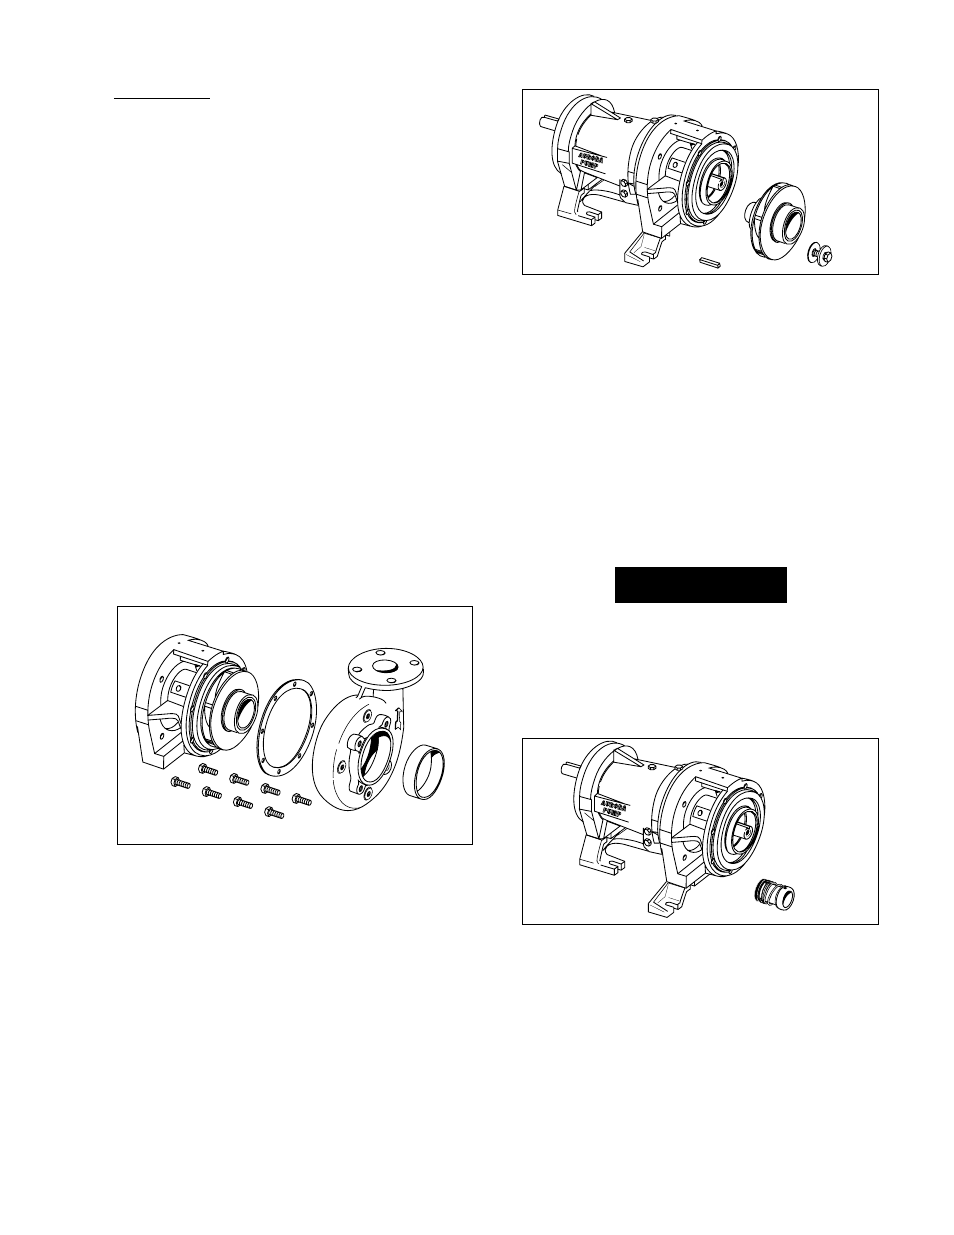 Caution | Aurora of America 342A User Manual | Page 3 / 10